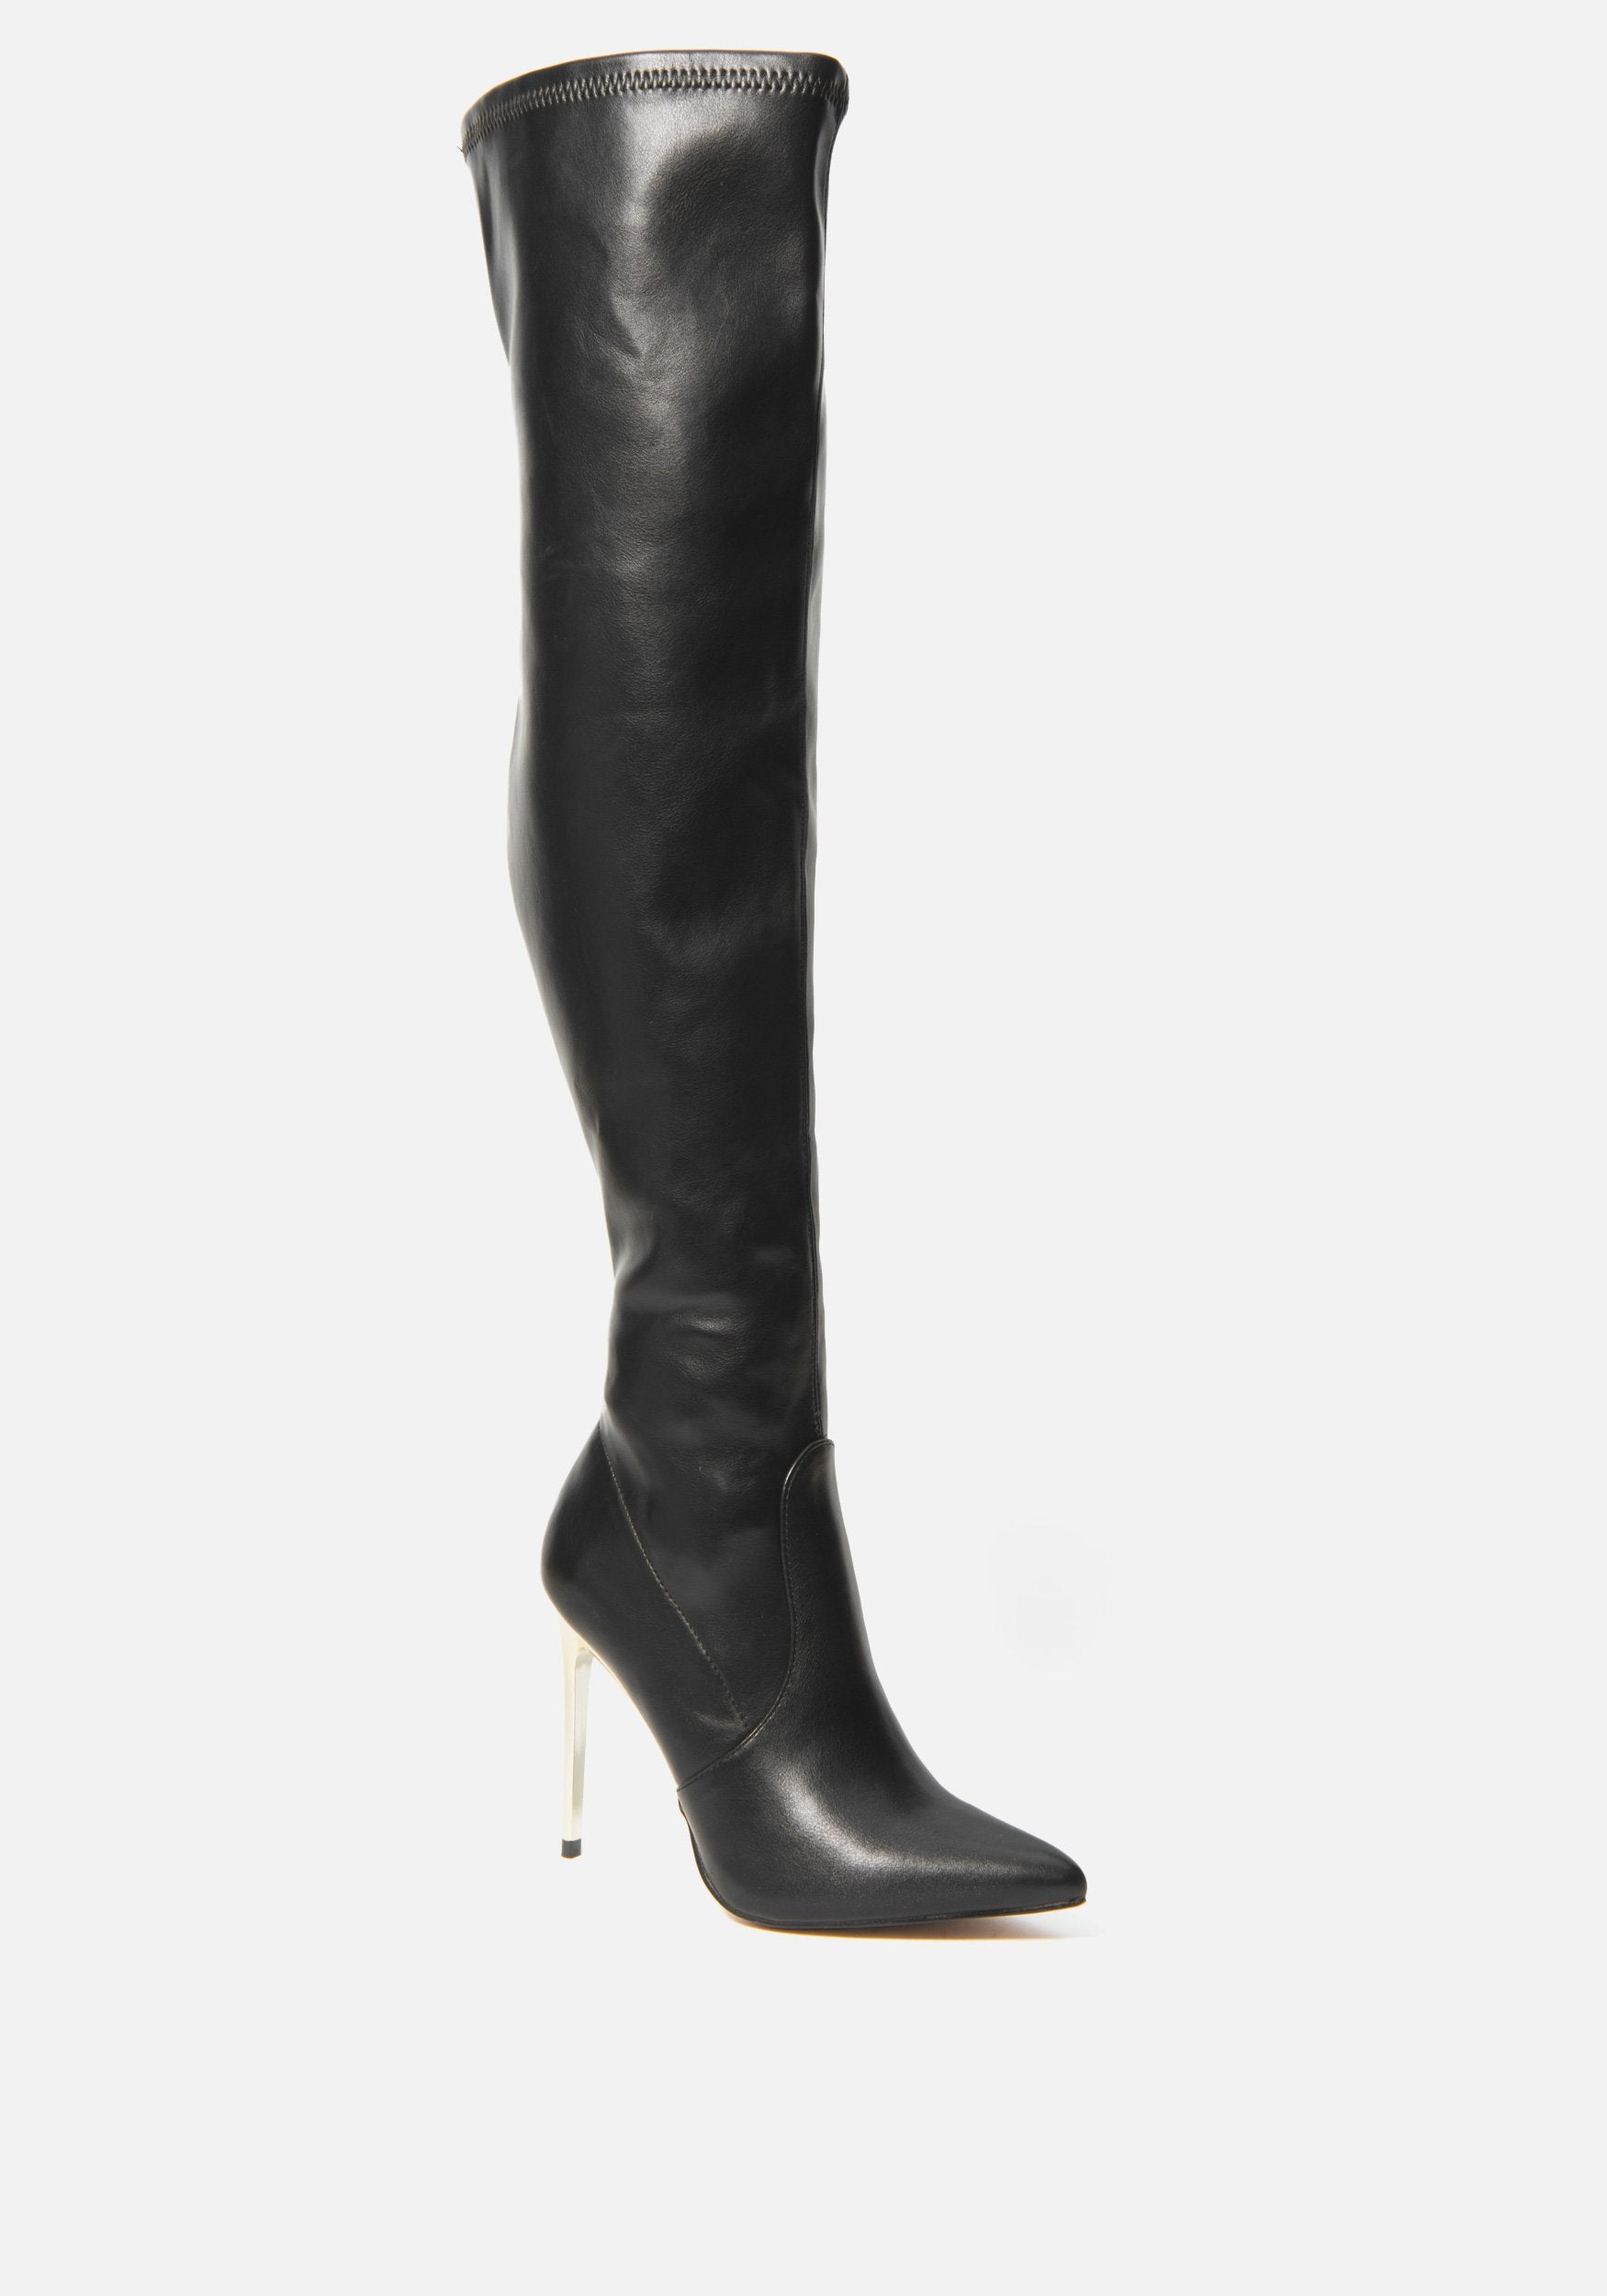 Bebe Women's Valirya Over the Knee Boots, Size 6 in BLACK Synthetic